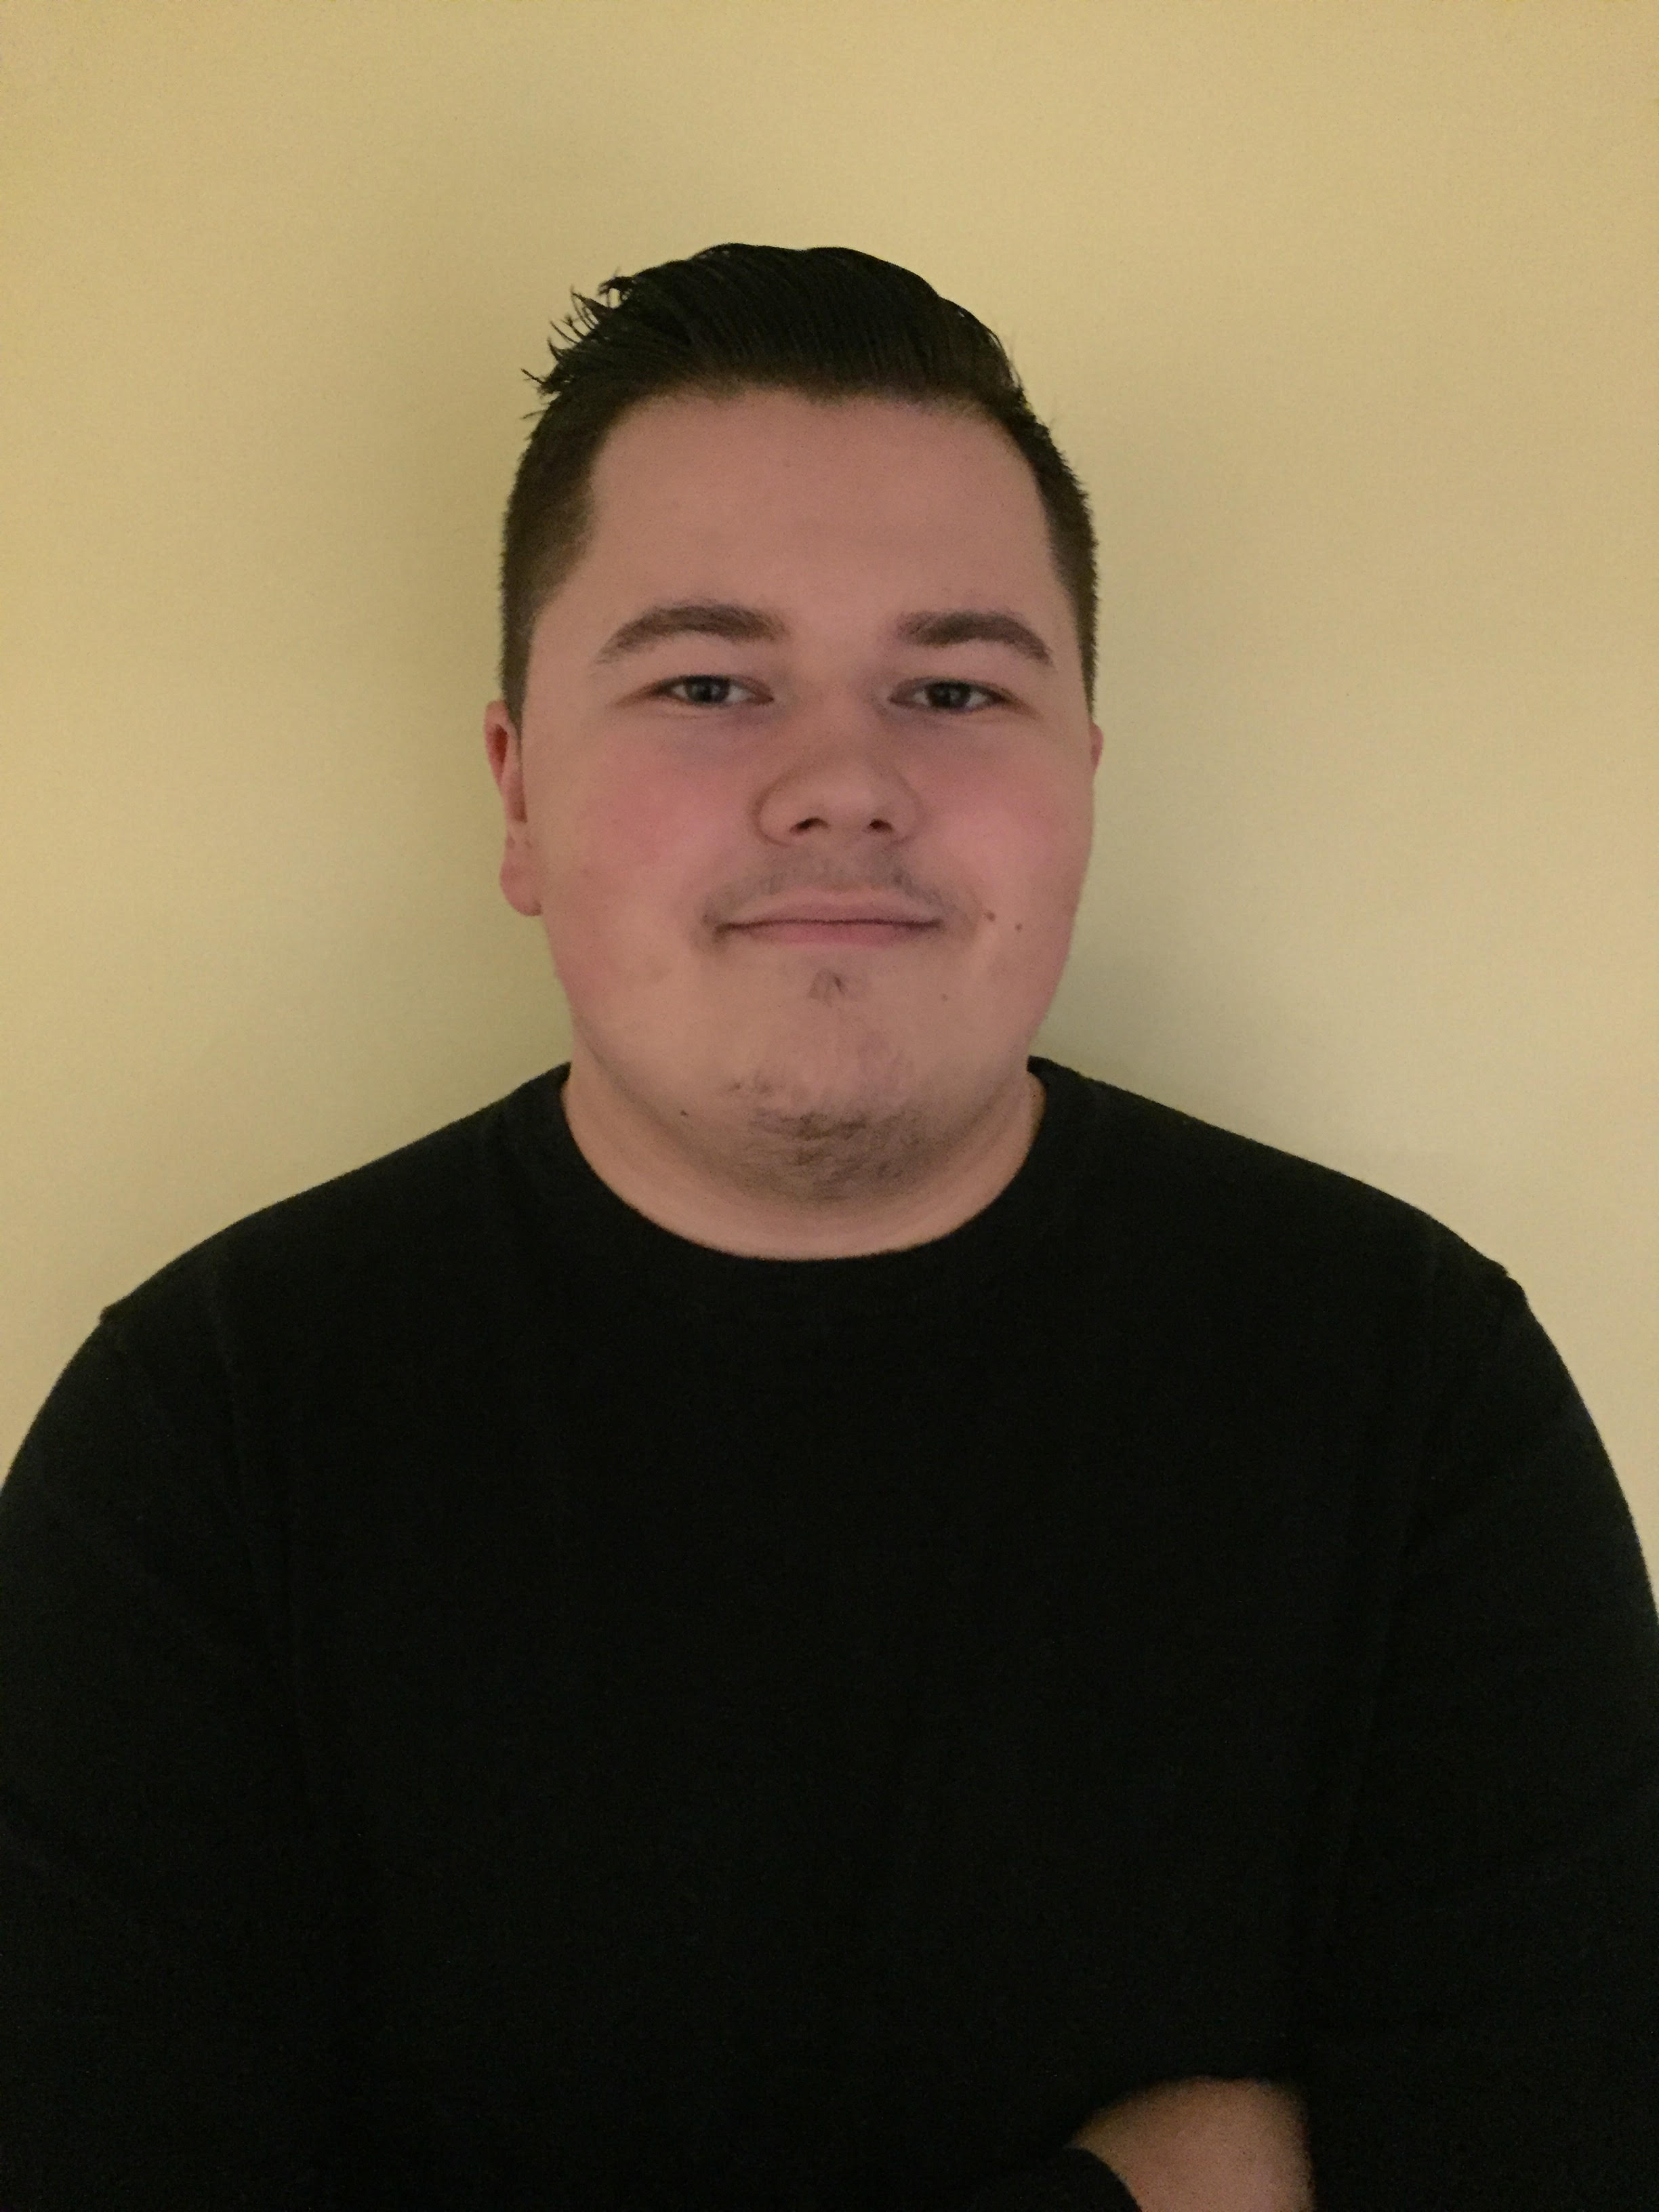 Picture of Lucas, wearing a black shirt.